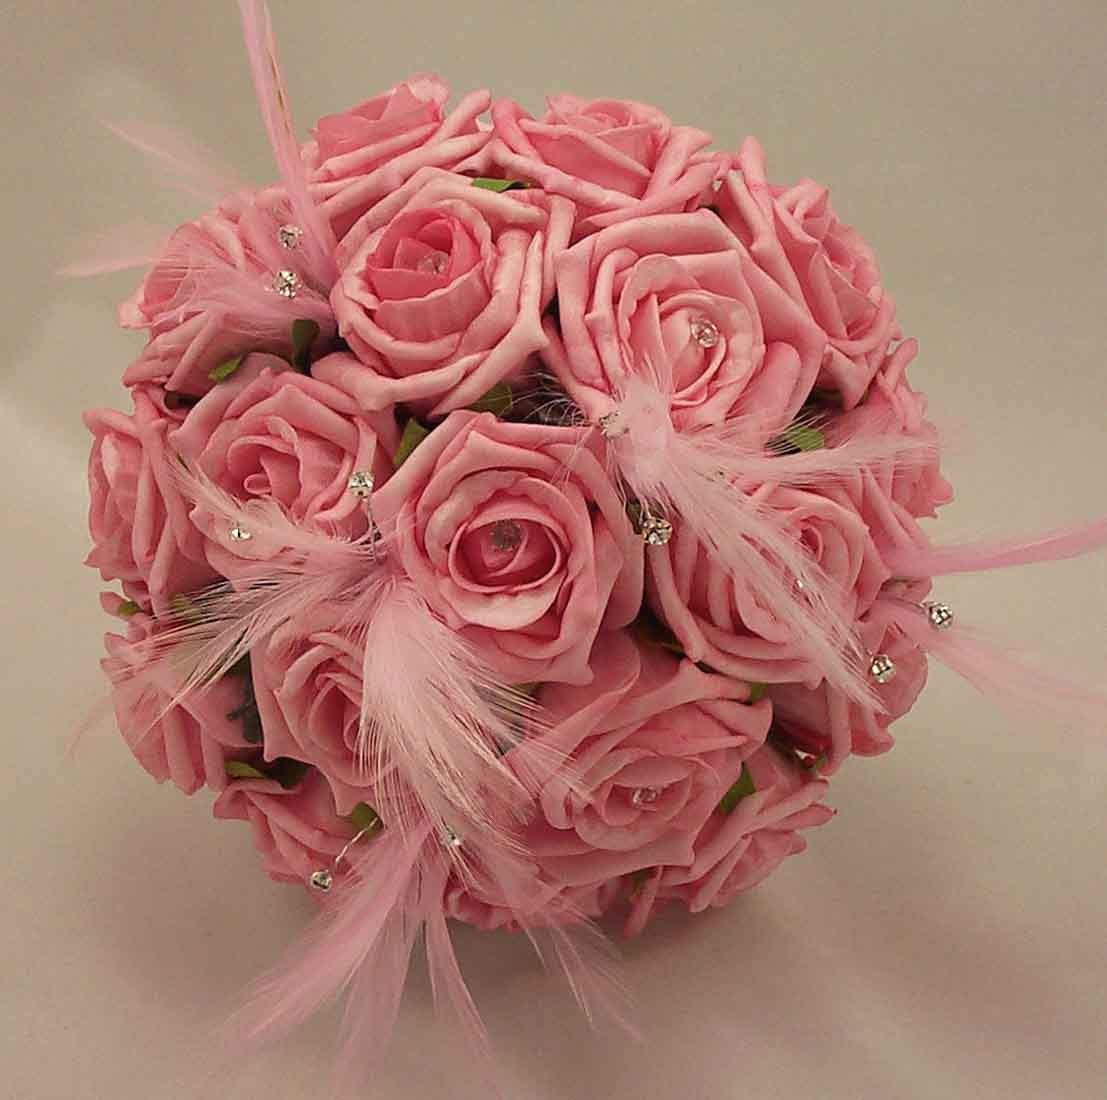 Pink Rose Feather Bridesmaid's Bouquet